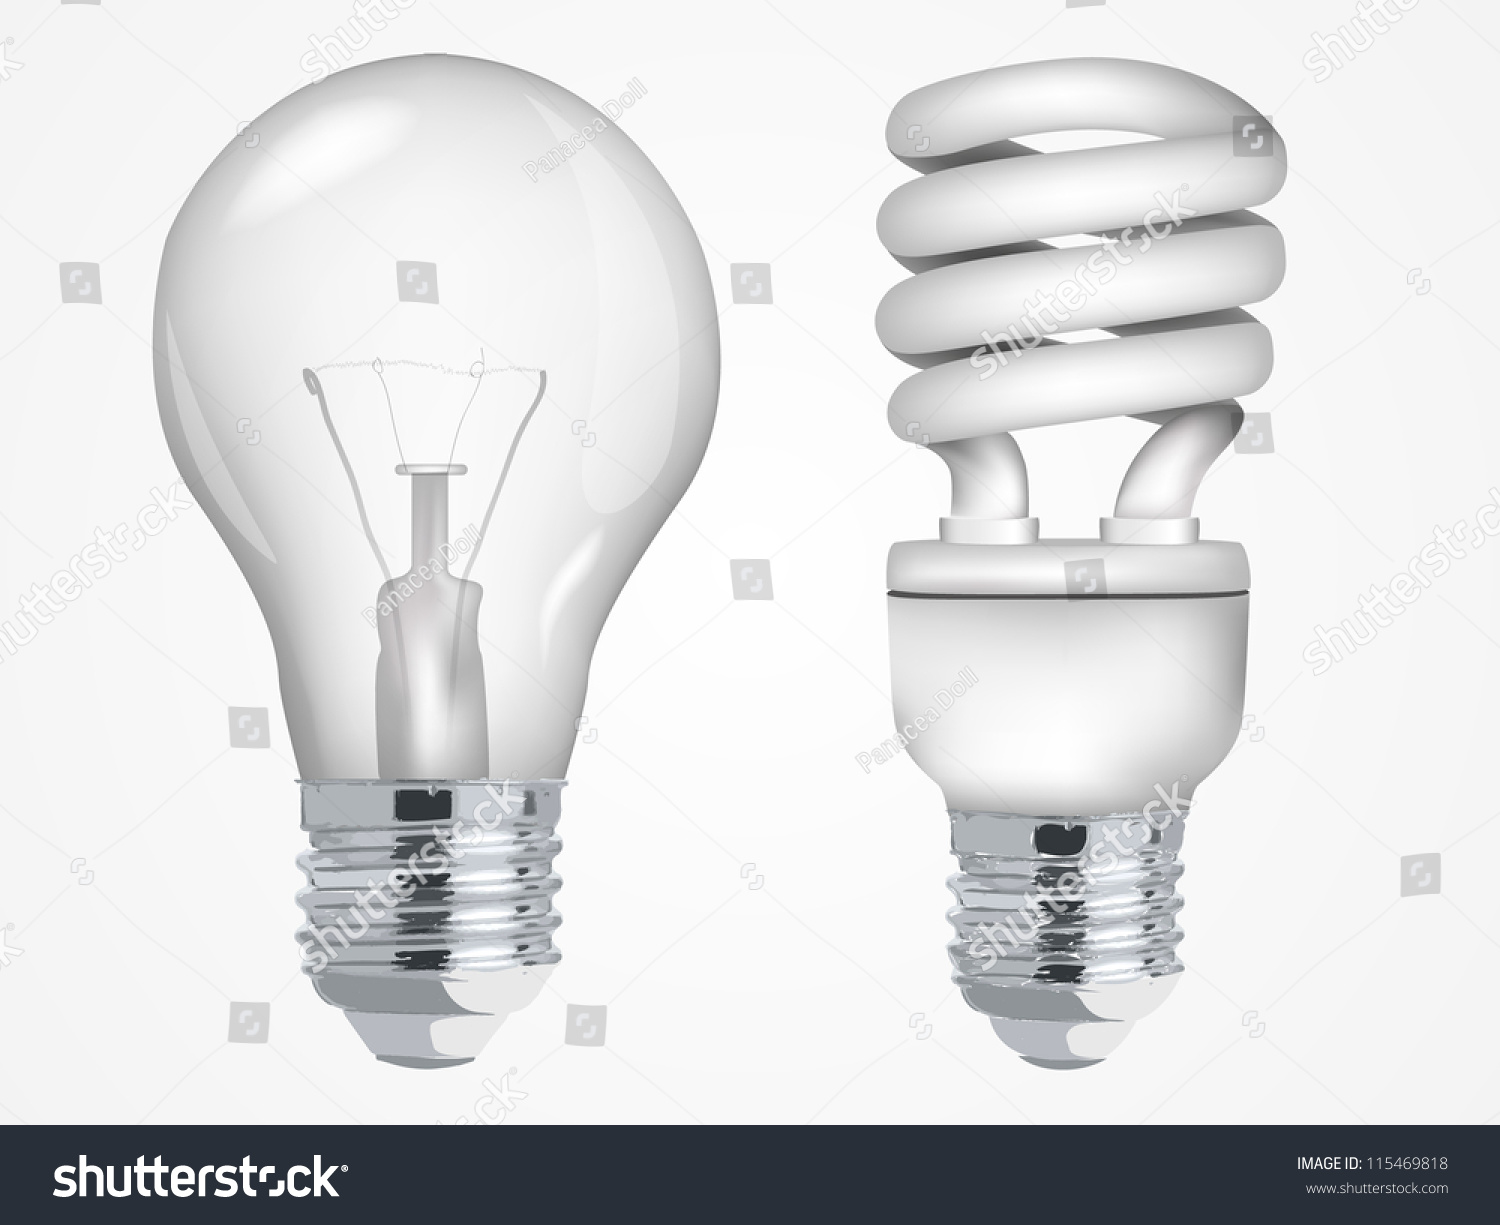 Where Can I Get Light Bulbs Incandescent And Fluorescent Energy Saving Light Bulbs